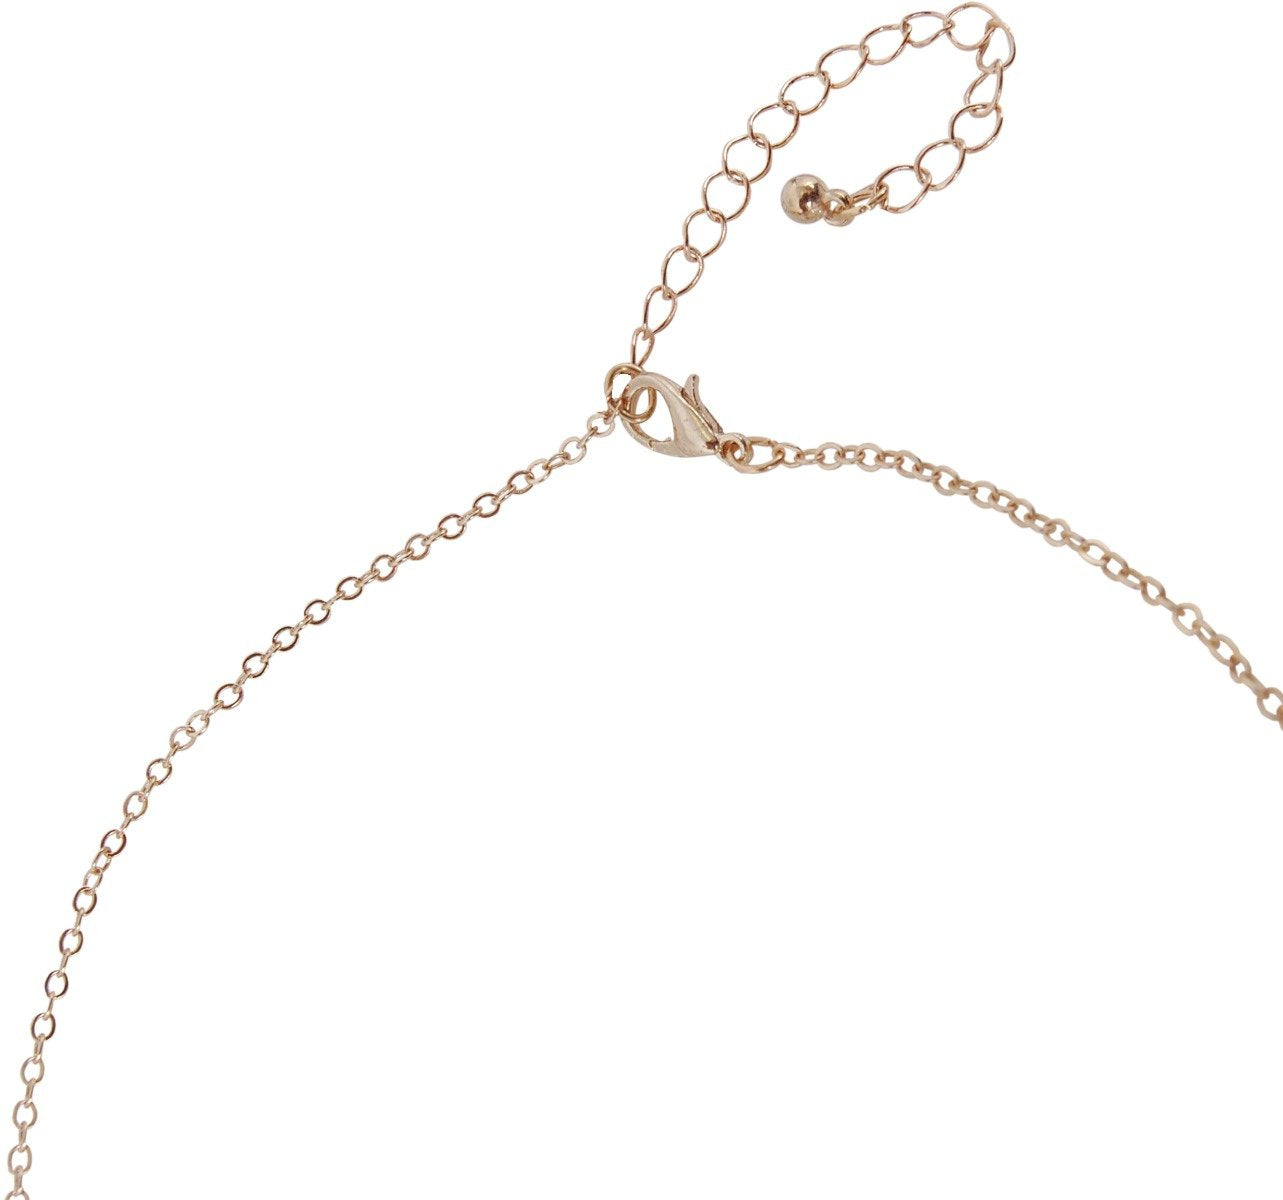 Humble Chic Women's Y-Chain Bar Necklace - Adjustable Long Thin Delicate Chevron Choker Lariat, Gold-Tone